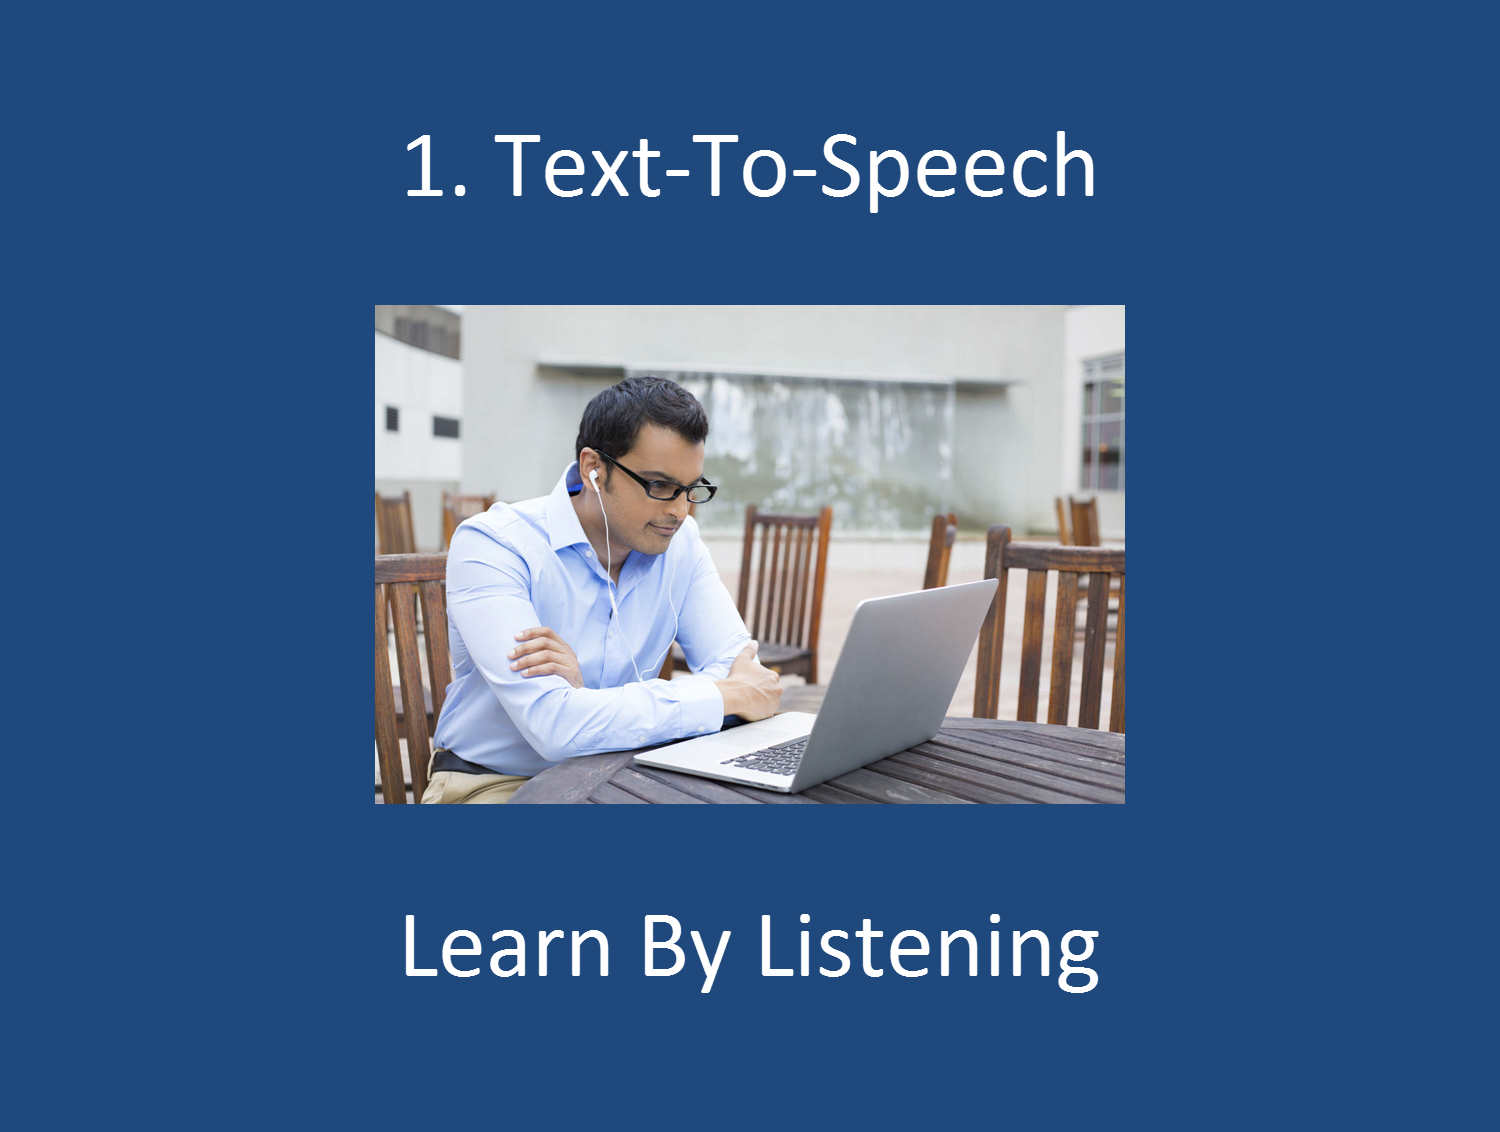 Text-To-speech gives you the benefit of using your auditory sense to learn by listening to your flashcards.